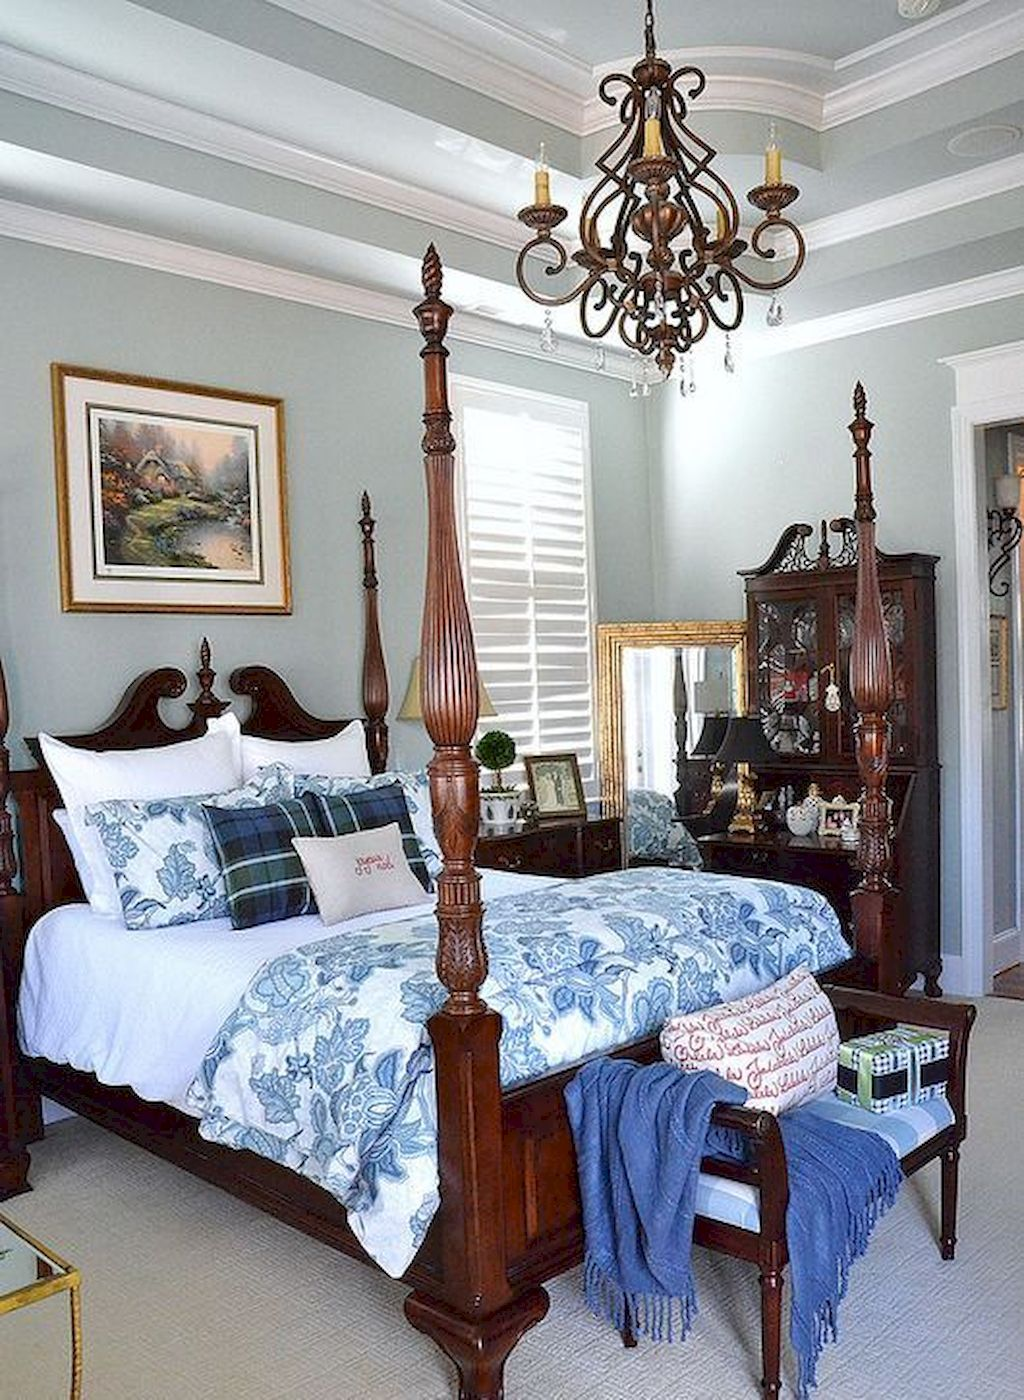 White Country Bedroom Furniture to Explore the Charm ...